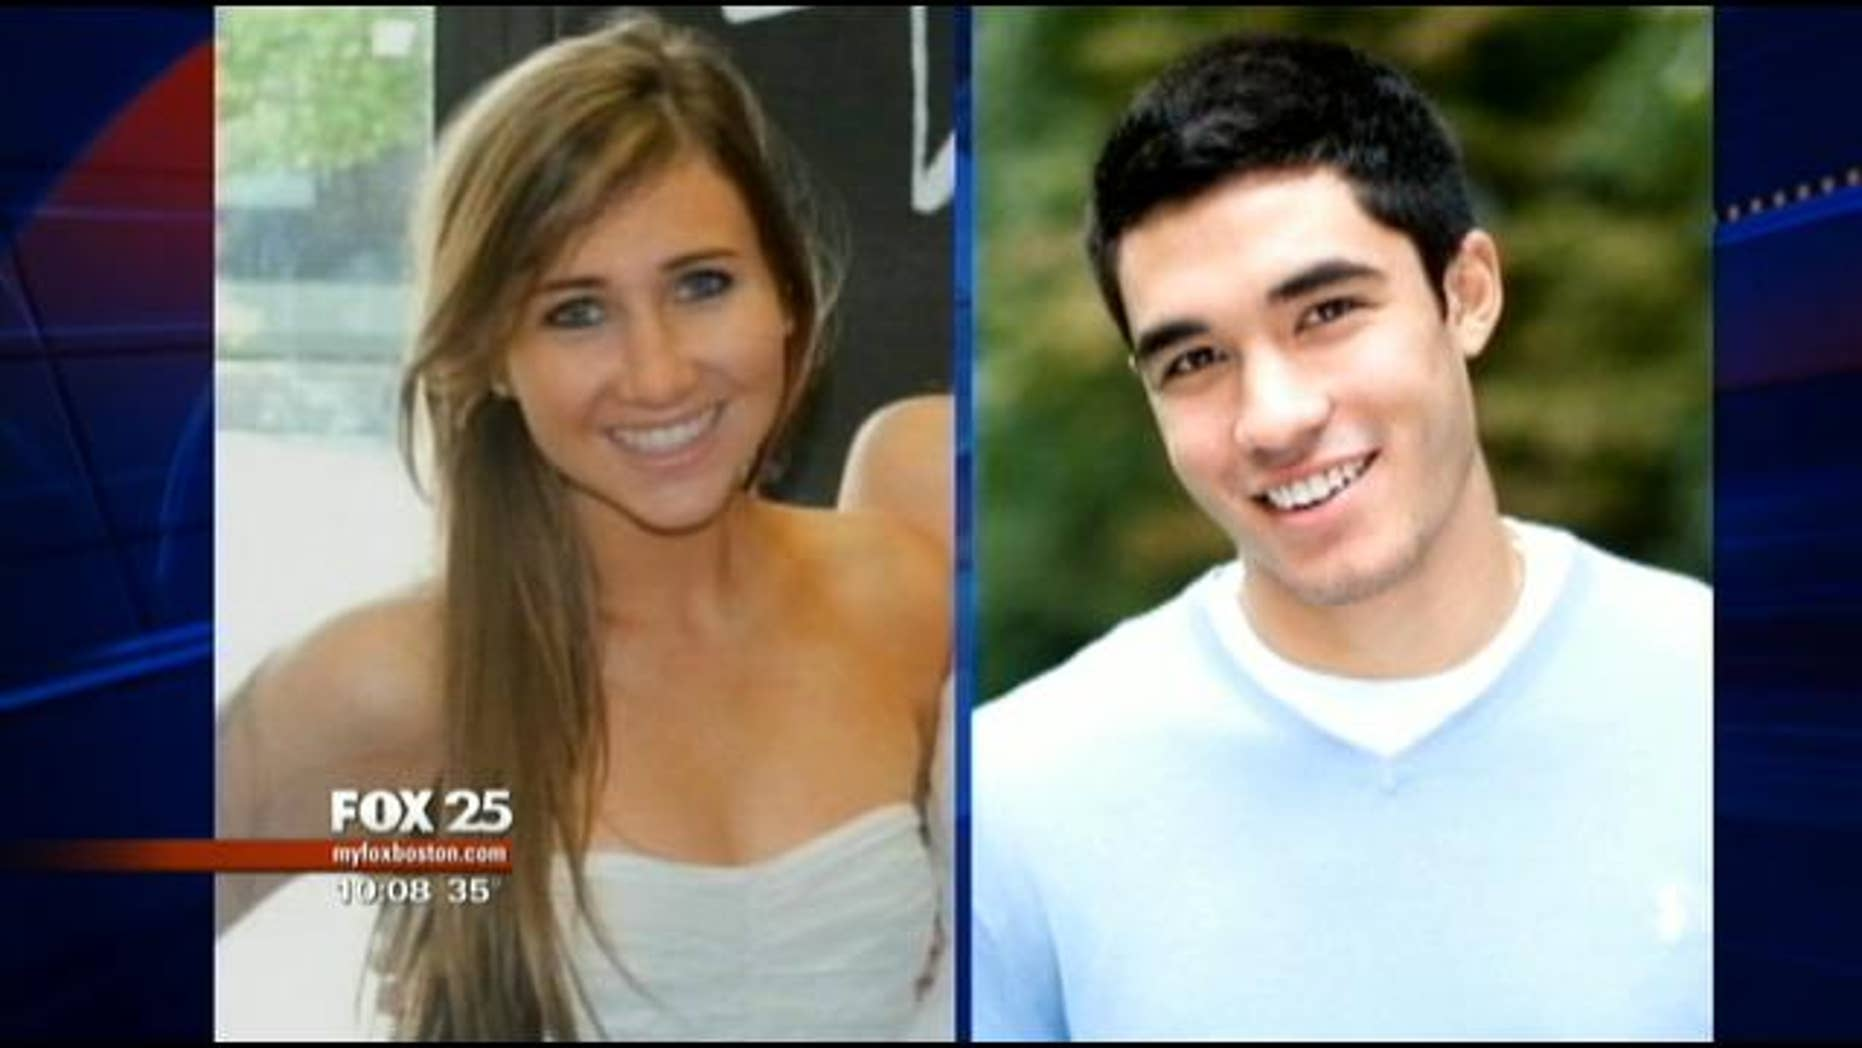 Nathanial Fujita, right, is charged with strangling and stabbing Lauren Astley, left, in July 2011